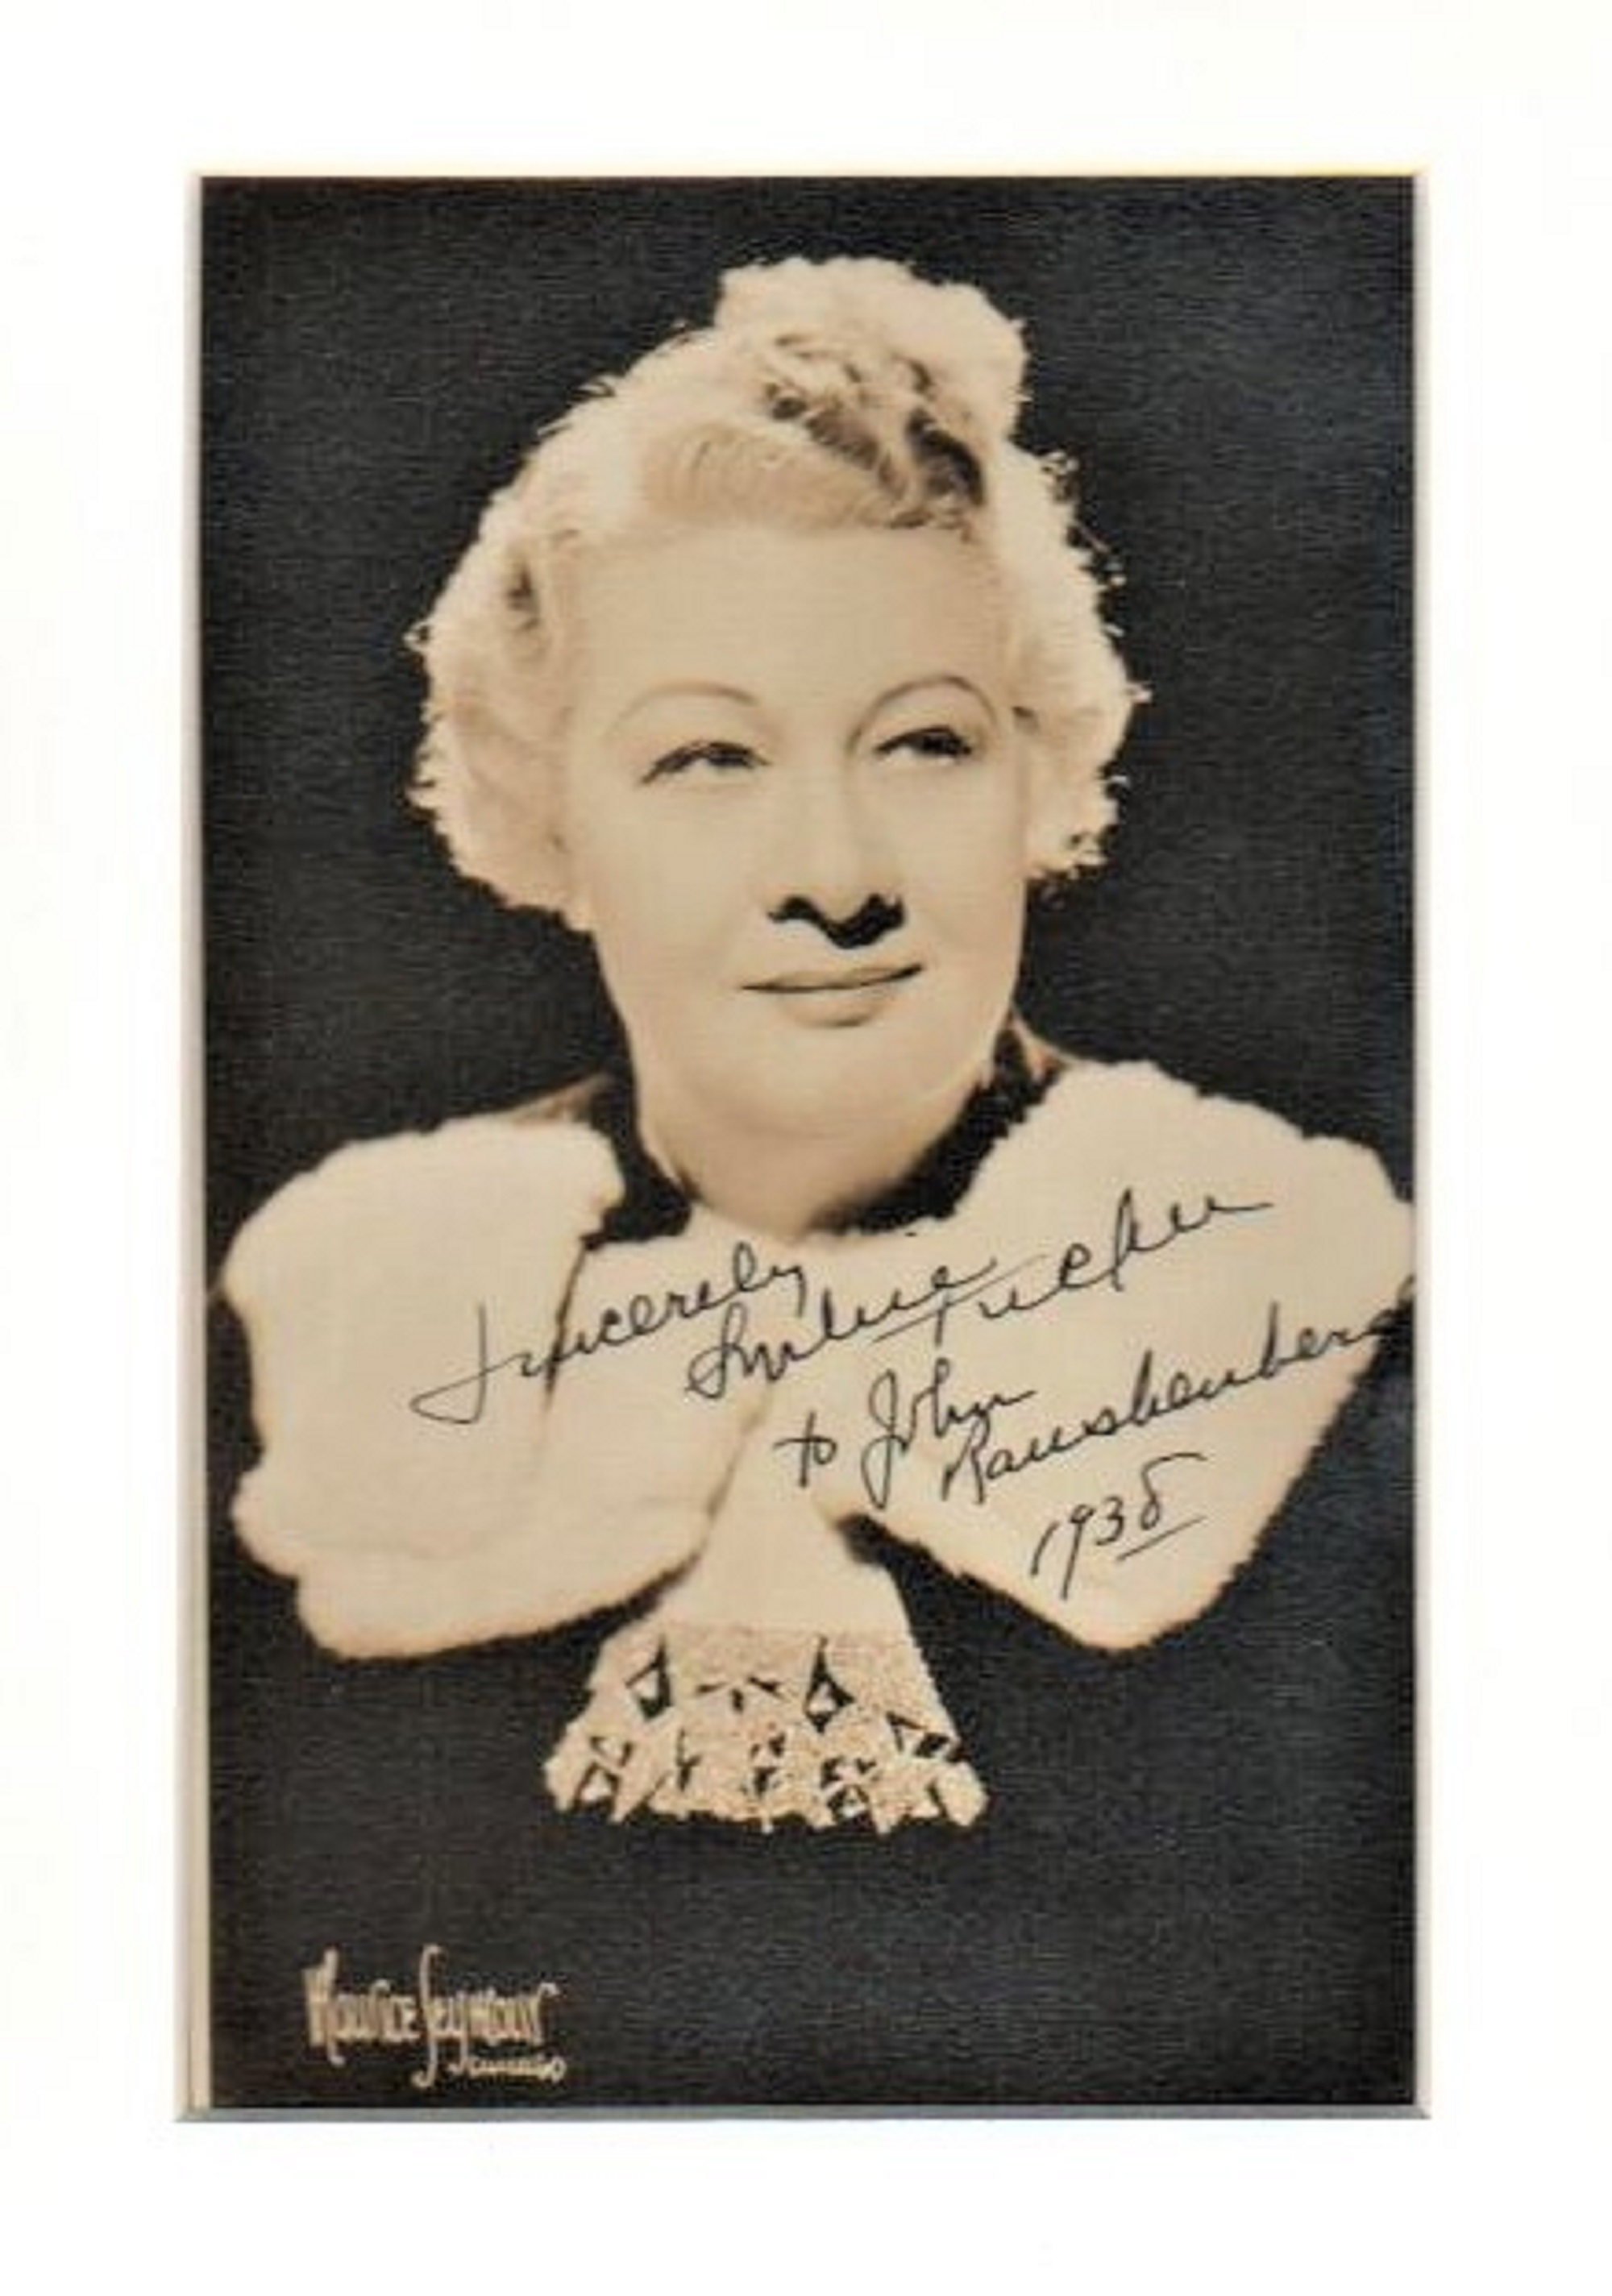 PHOTOGRAPH_SIGNED_BY_SOPHIE_TUCKER_Tucker_Sophie___Softcover